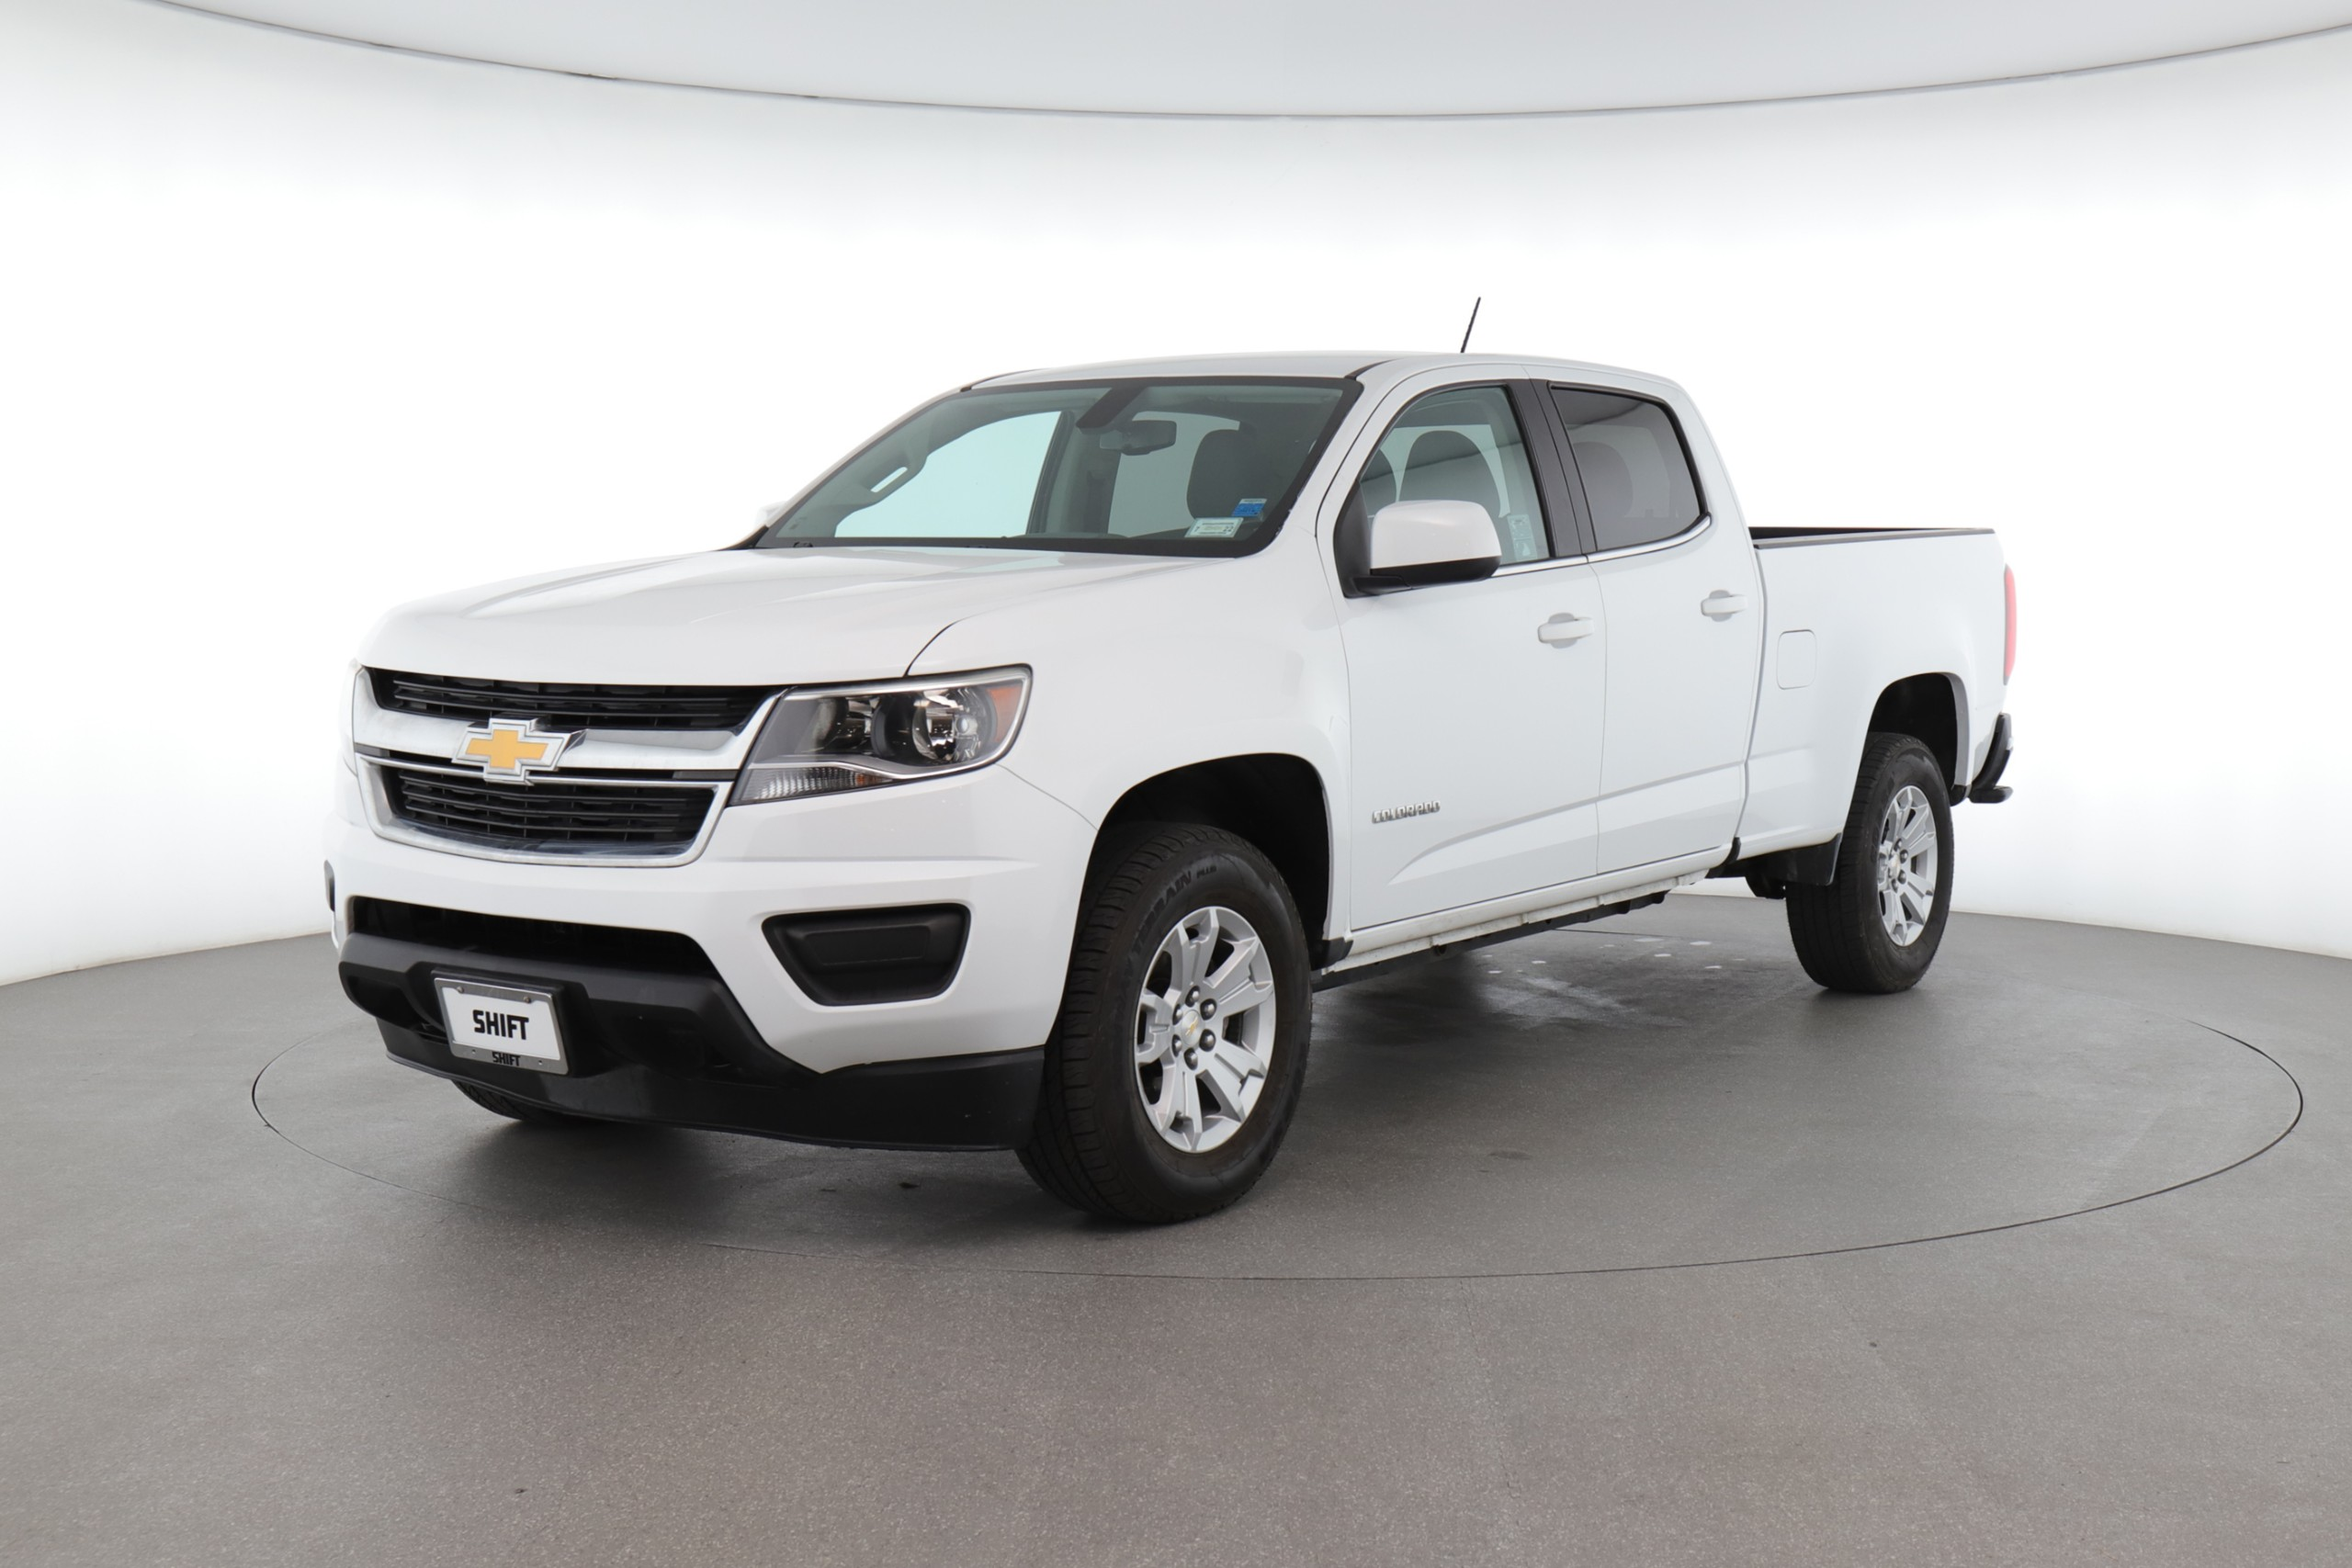 2016 Chevrolet Colorado 4WD LT (from $31,450)